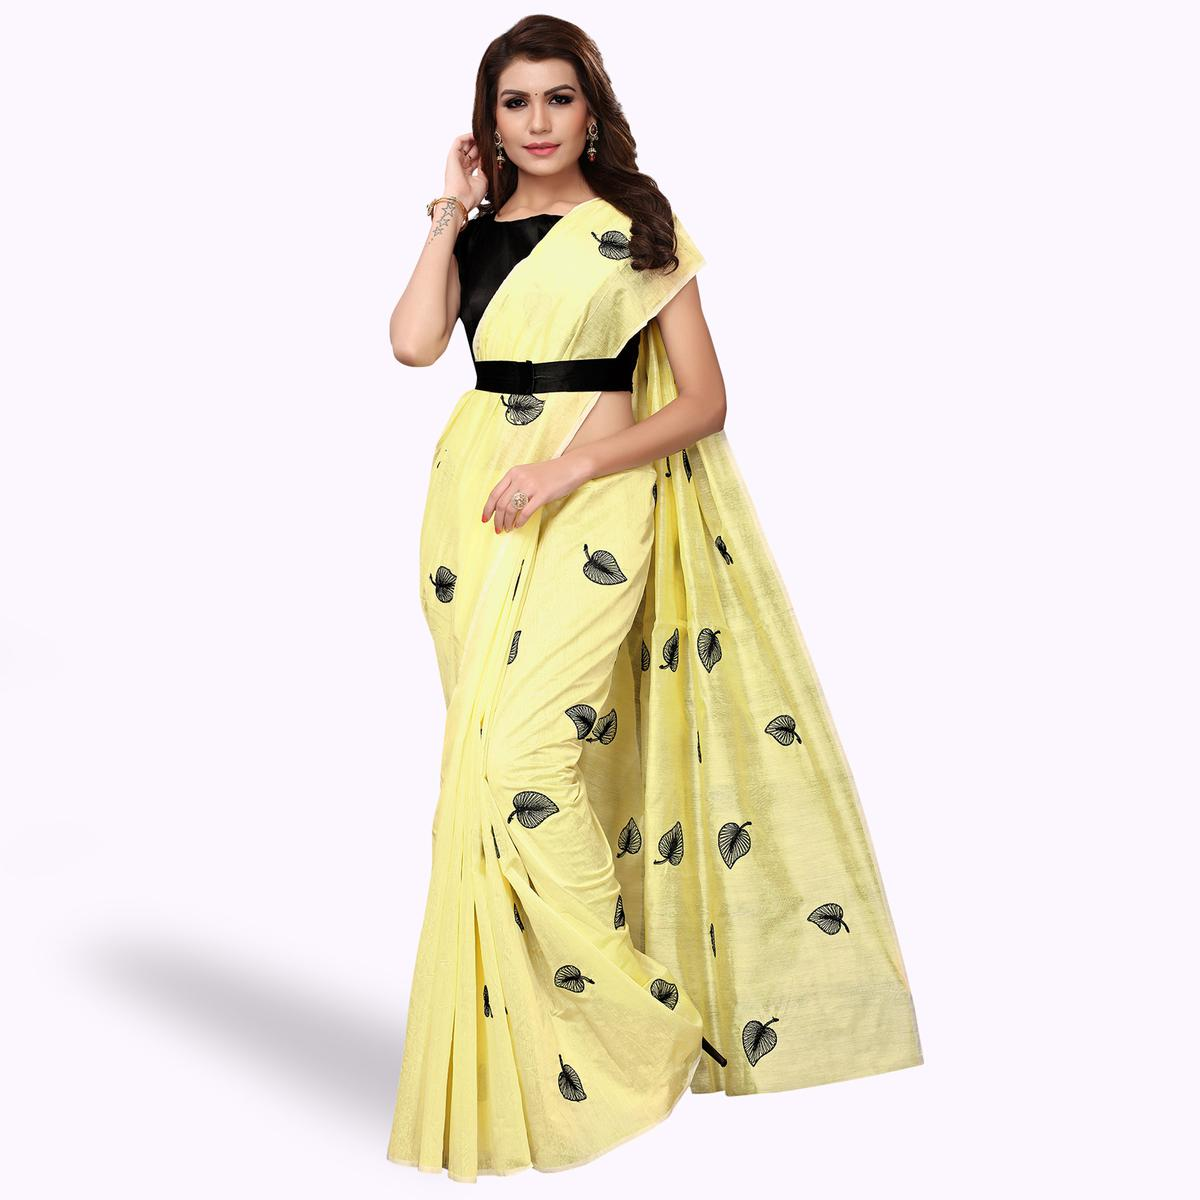 Mesmerising Yellow Colored Party Wear Embroidered Chanderi Silk Saree